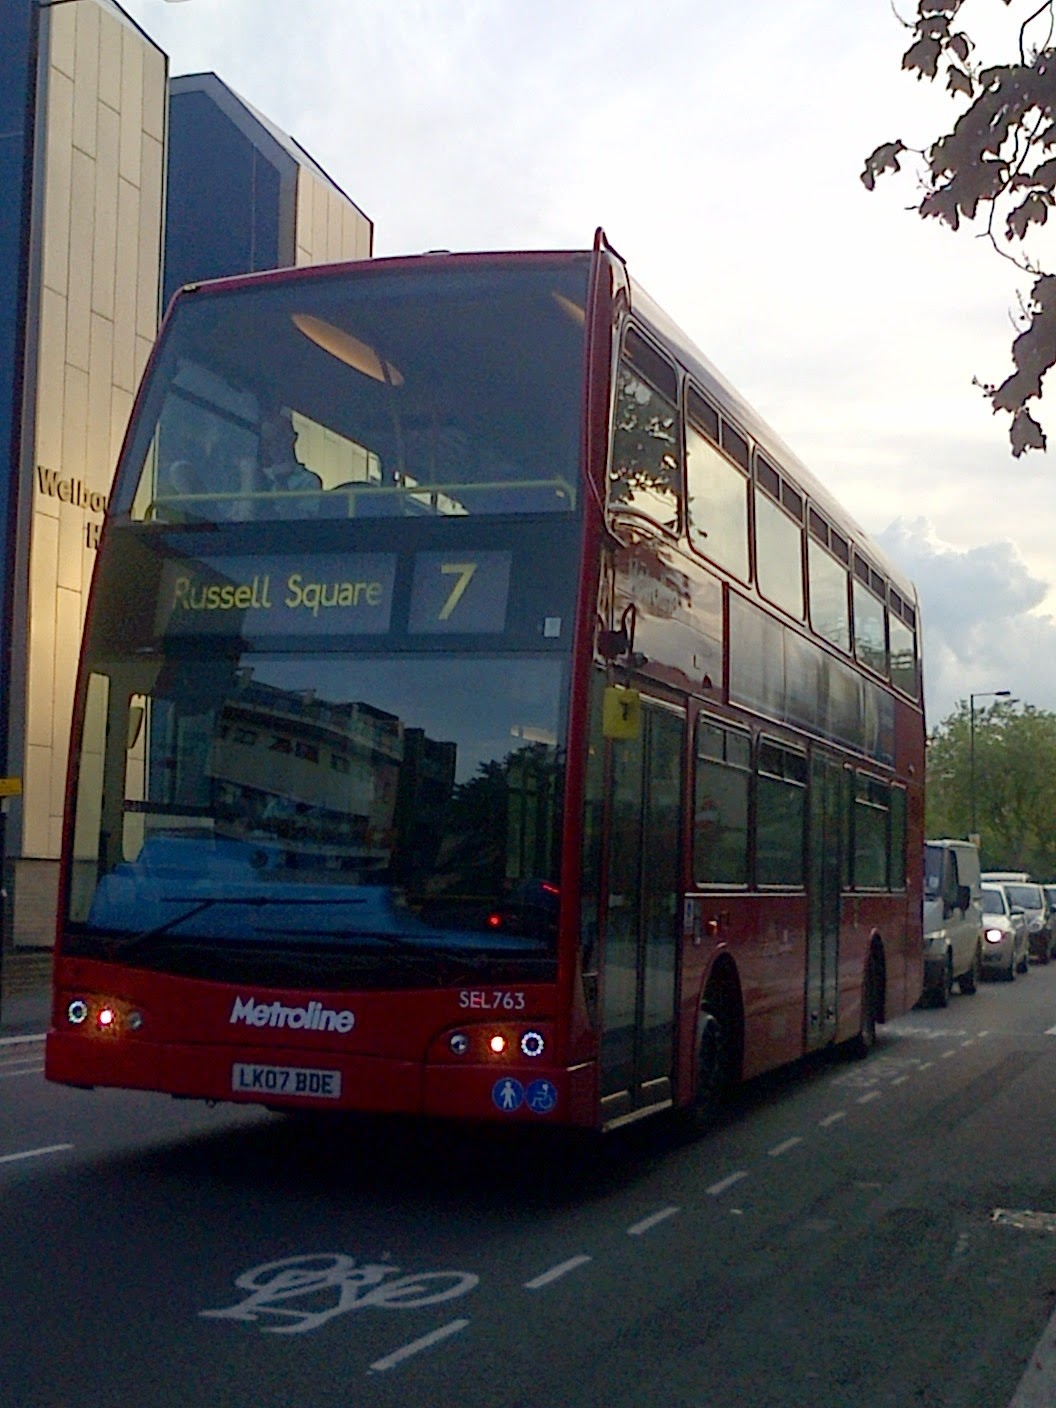 London Buses On The Go: 200th Post! The Return Of SEL763